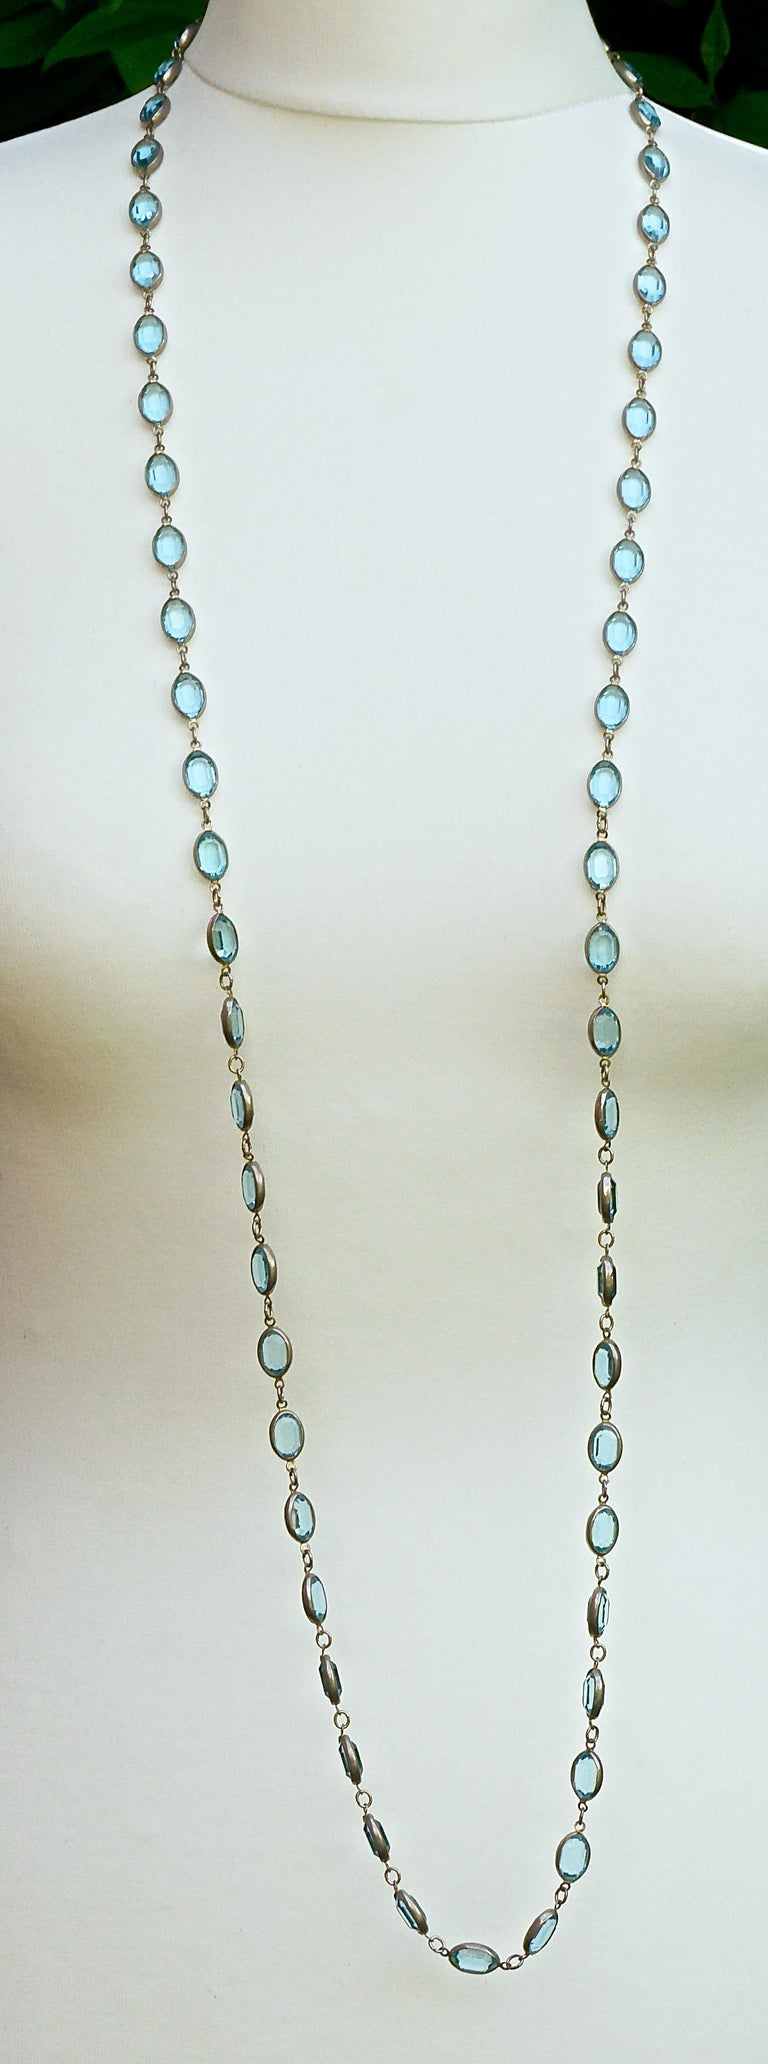 Long Silver Tone and Bezel Set Open Back Oval Blue Glass Link Necklace In Good Condition For Sale In London, GB